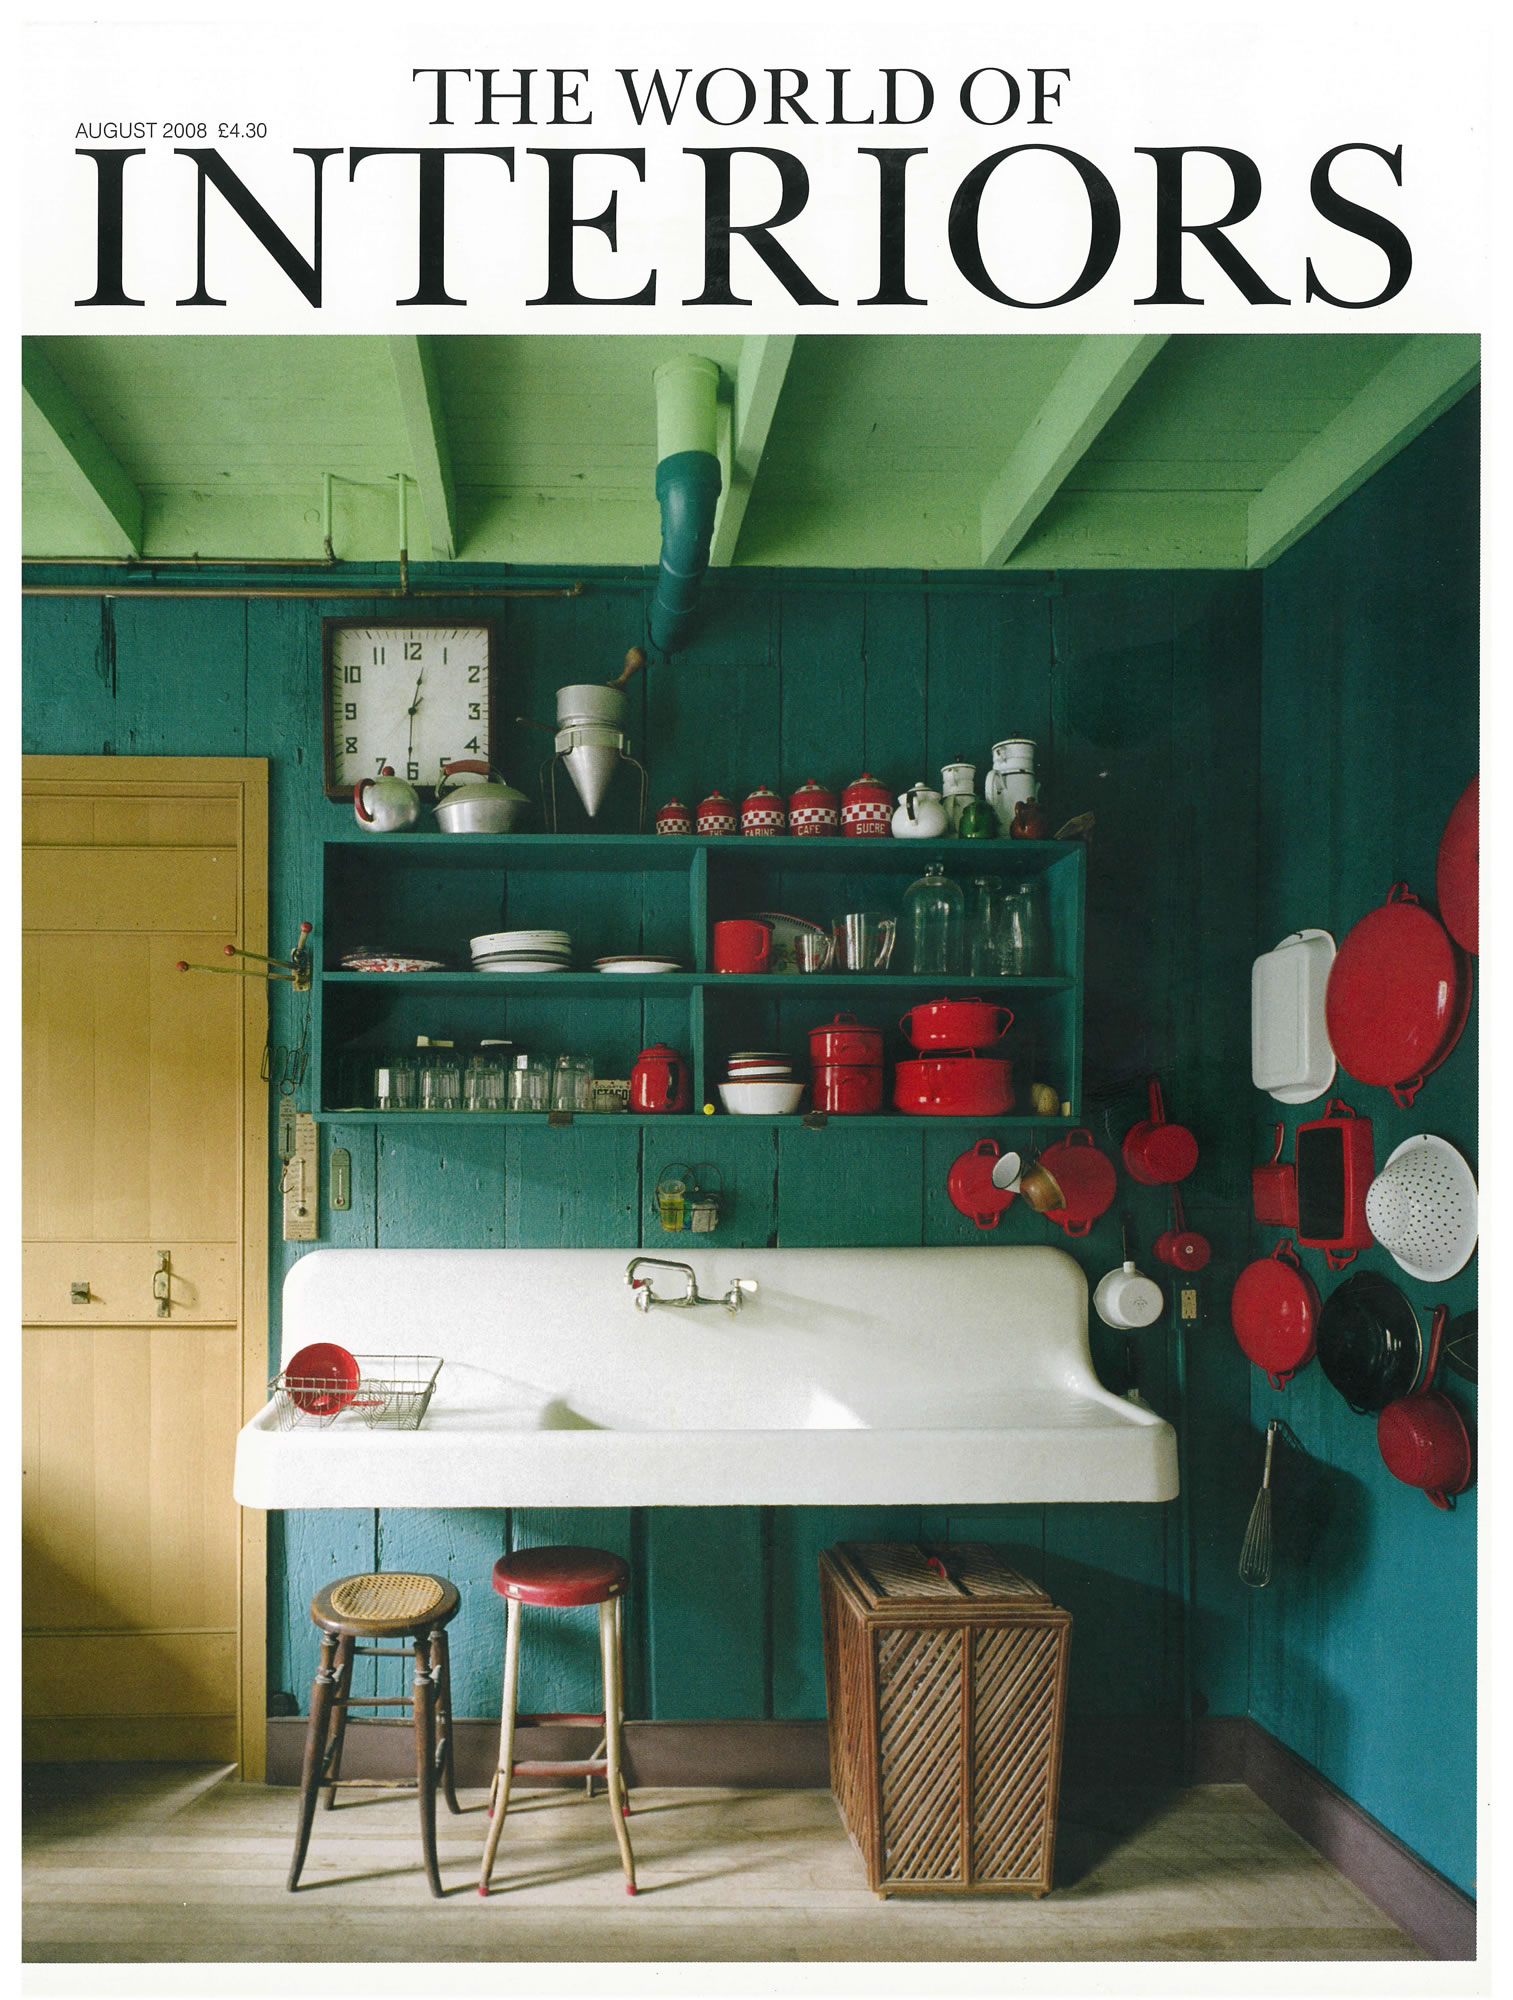 The World of Interiors - August 2008 | Article on The Heveningham ...